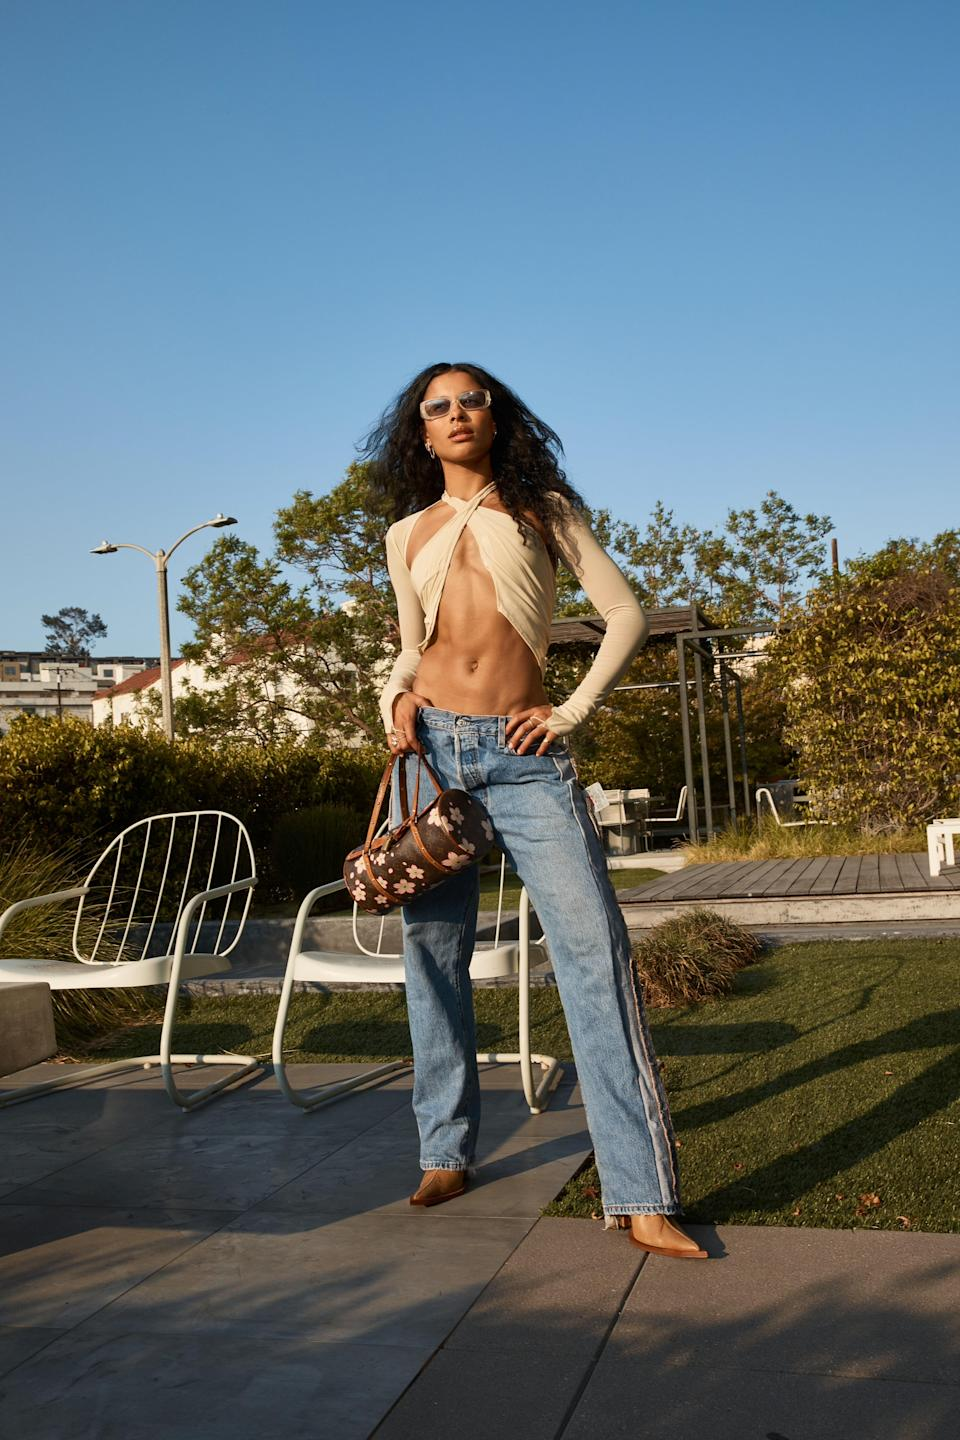 Miro wears a Sami Miro Vintage open seam scarf top in ivory mesh and porterhouse jeans in vintage blue with vintage Louis Vuitton purse and Versace sunglasses.